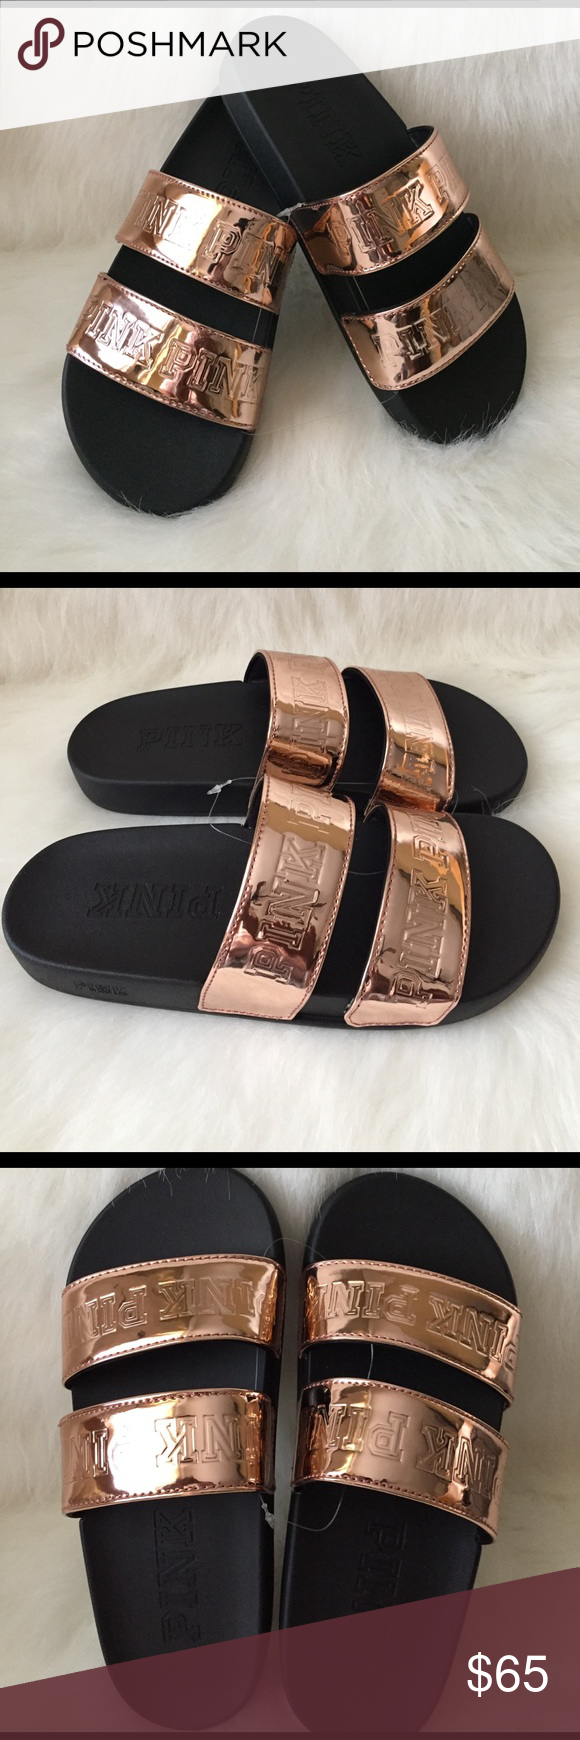 Sandals vs shoes - New Vs Pink Rose Gold Double Strap Sport Slide Rose Gold Everyday Slides With Double Strap